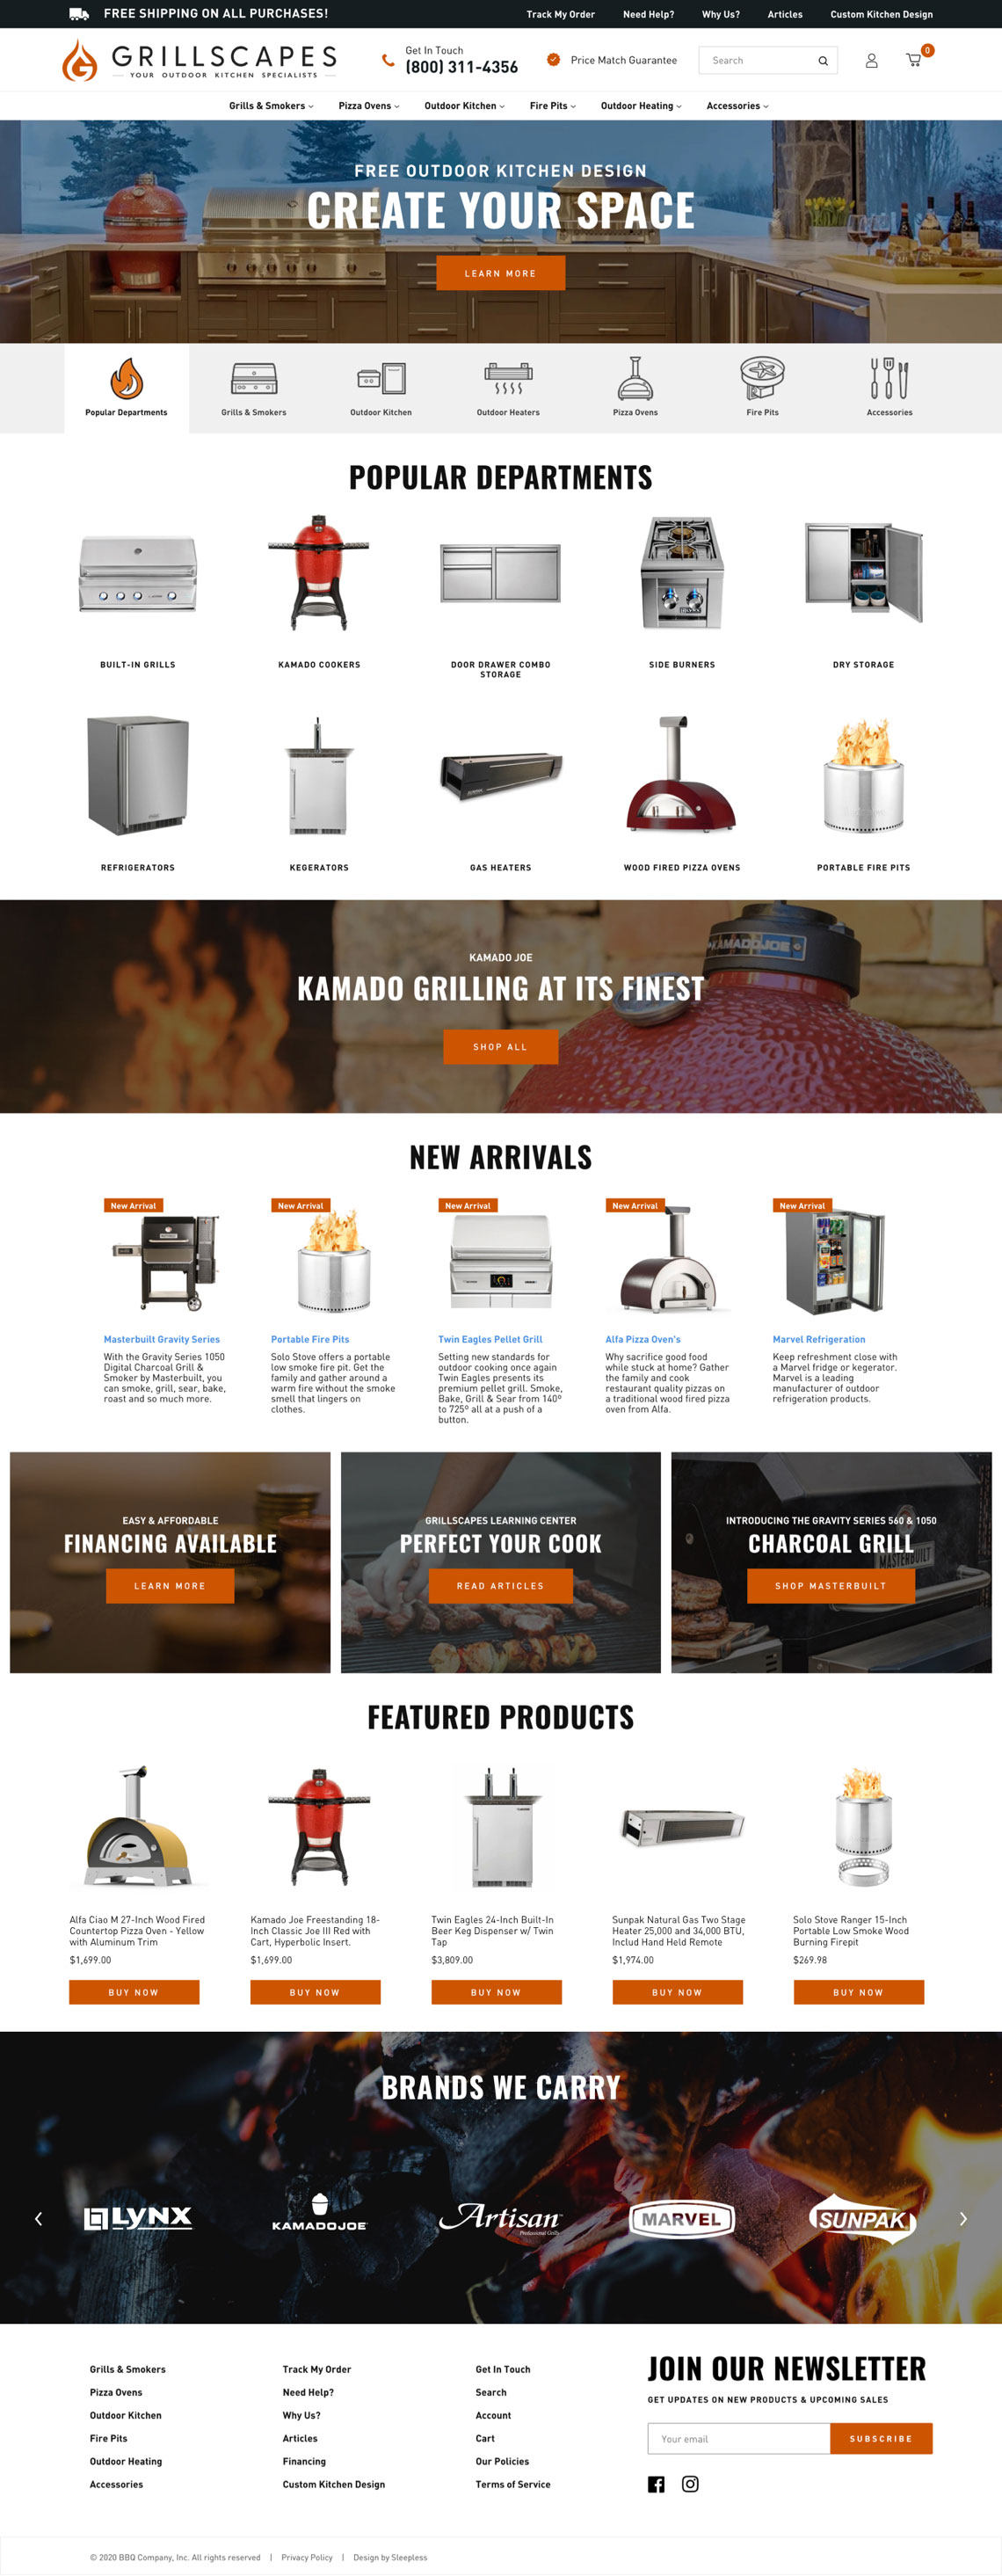 Grillscapes Homepage